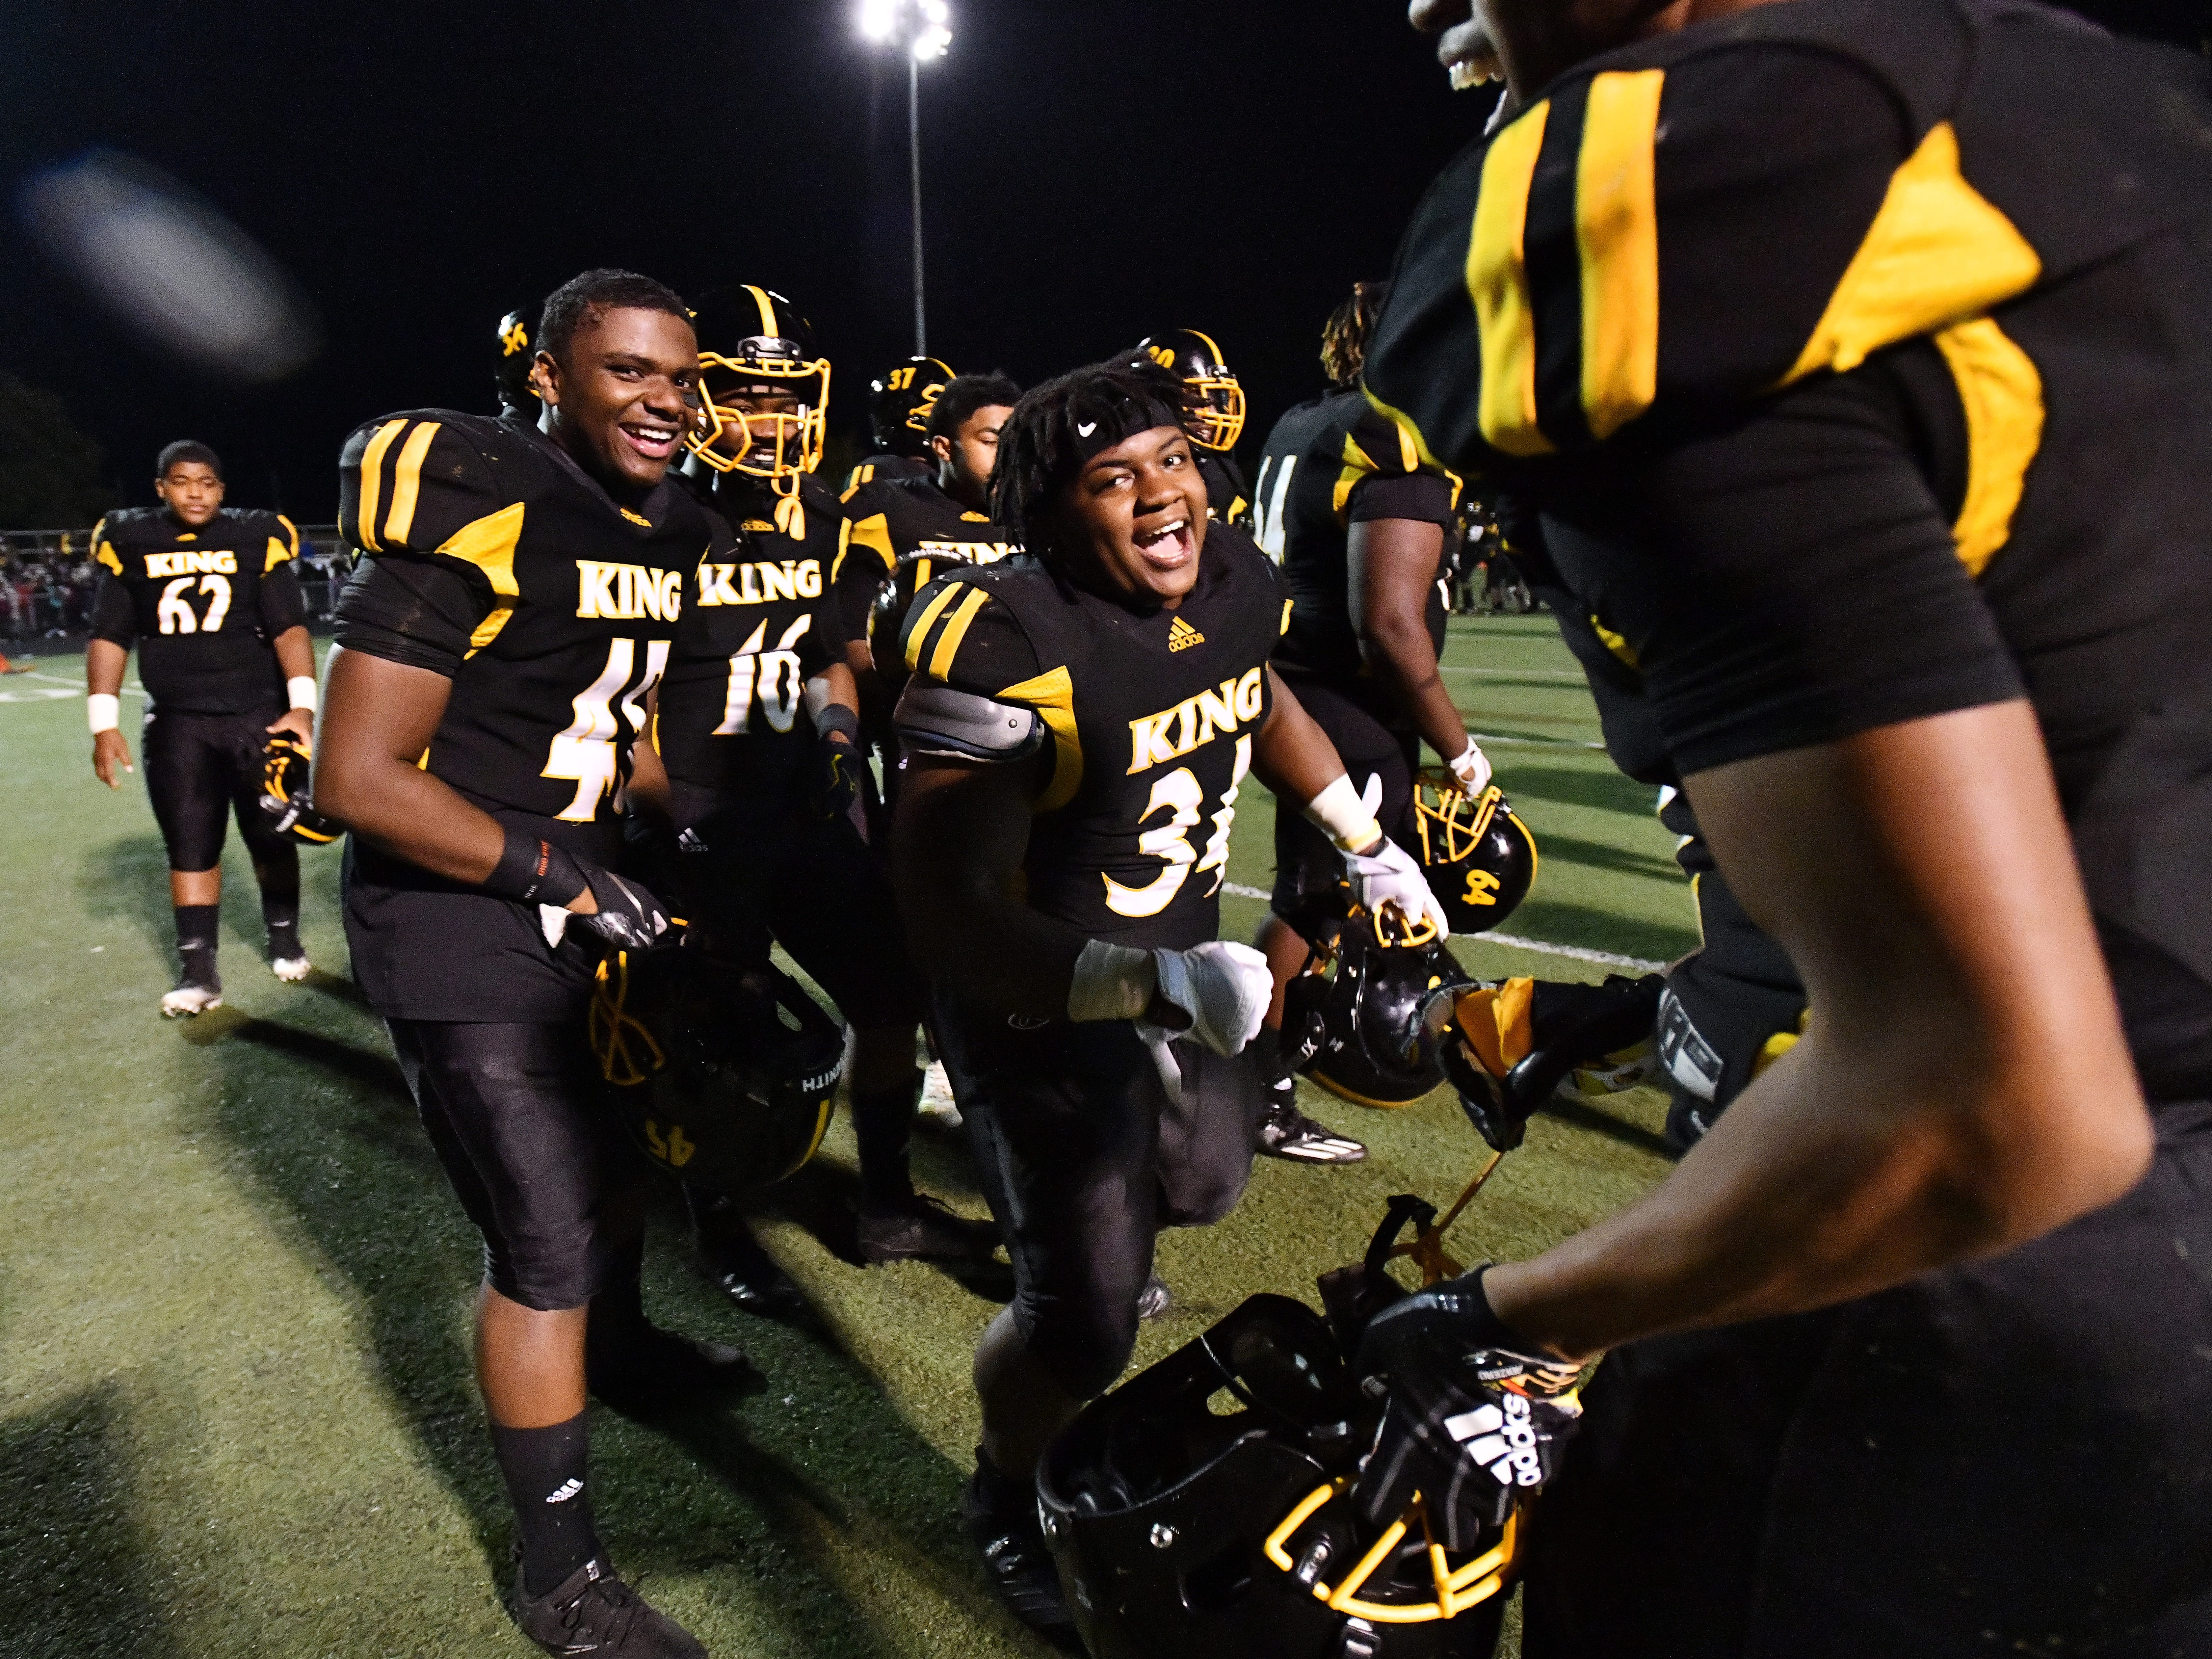 A celebratory dance by King's Lorenzo White Jr. and teammates after Martin Luther King Jr. Senior High School beat River Rouge 7-6 in a playoff game in Detroit, Michigan on October 26, 2018.